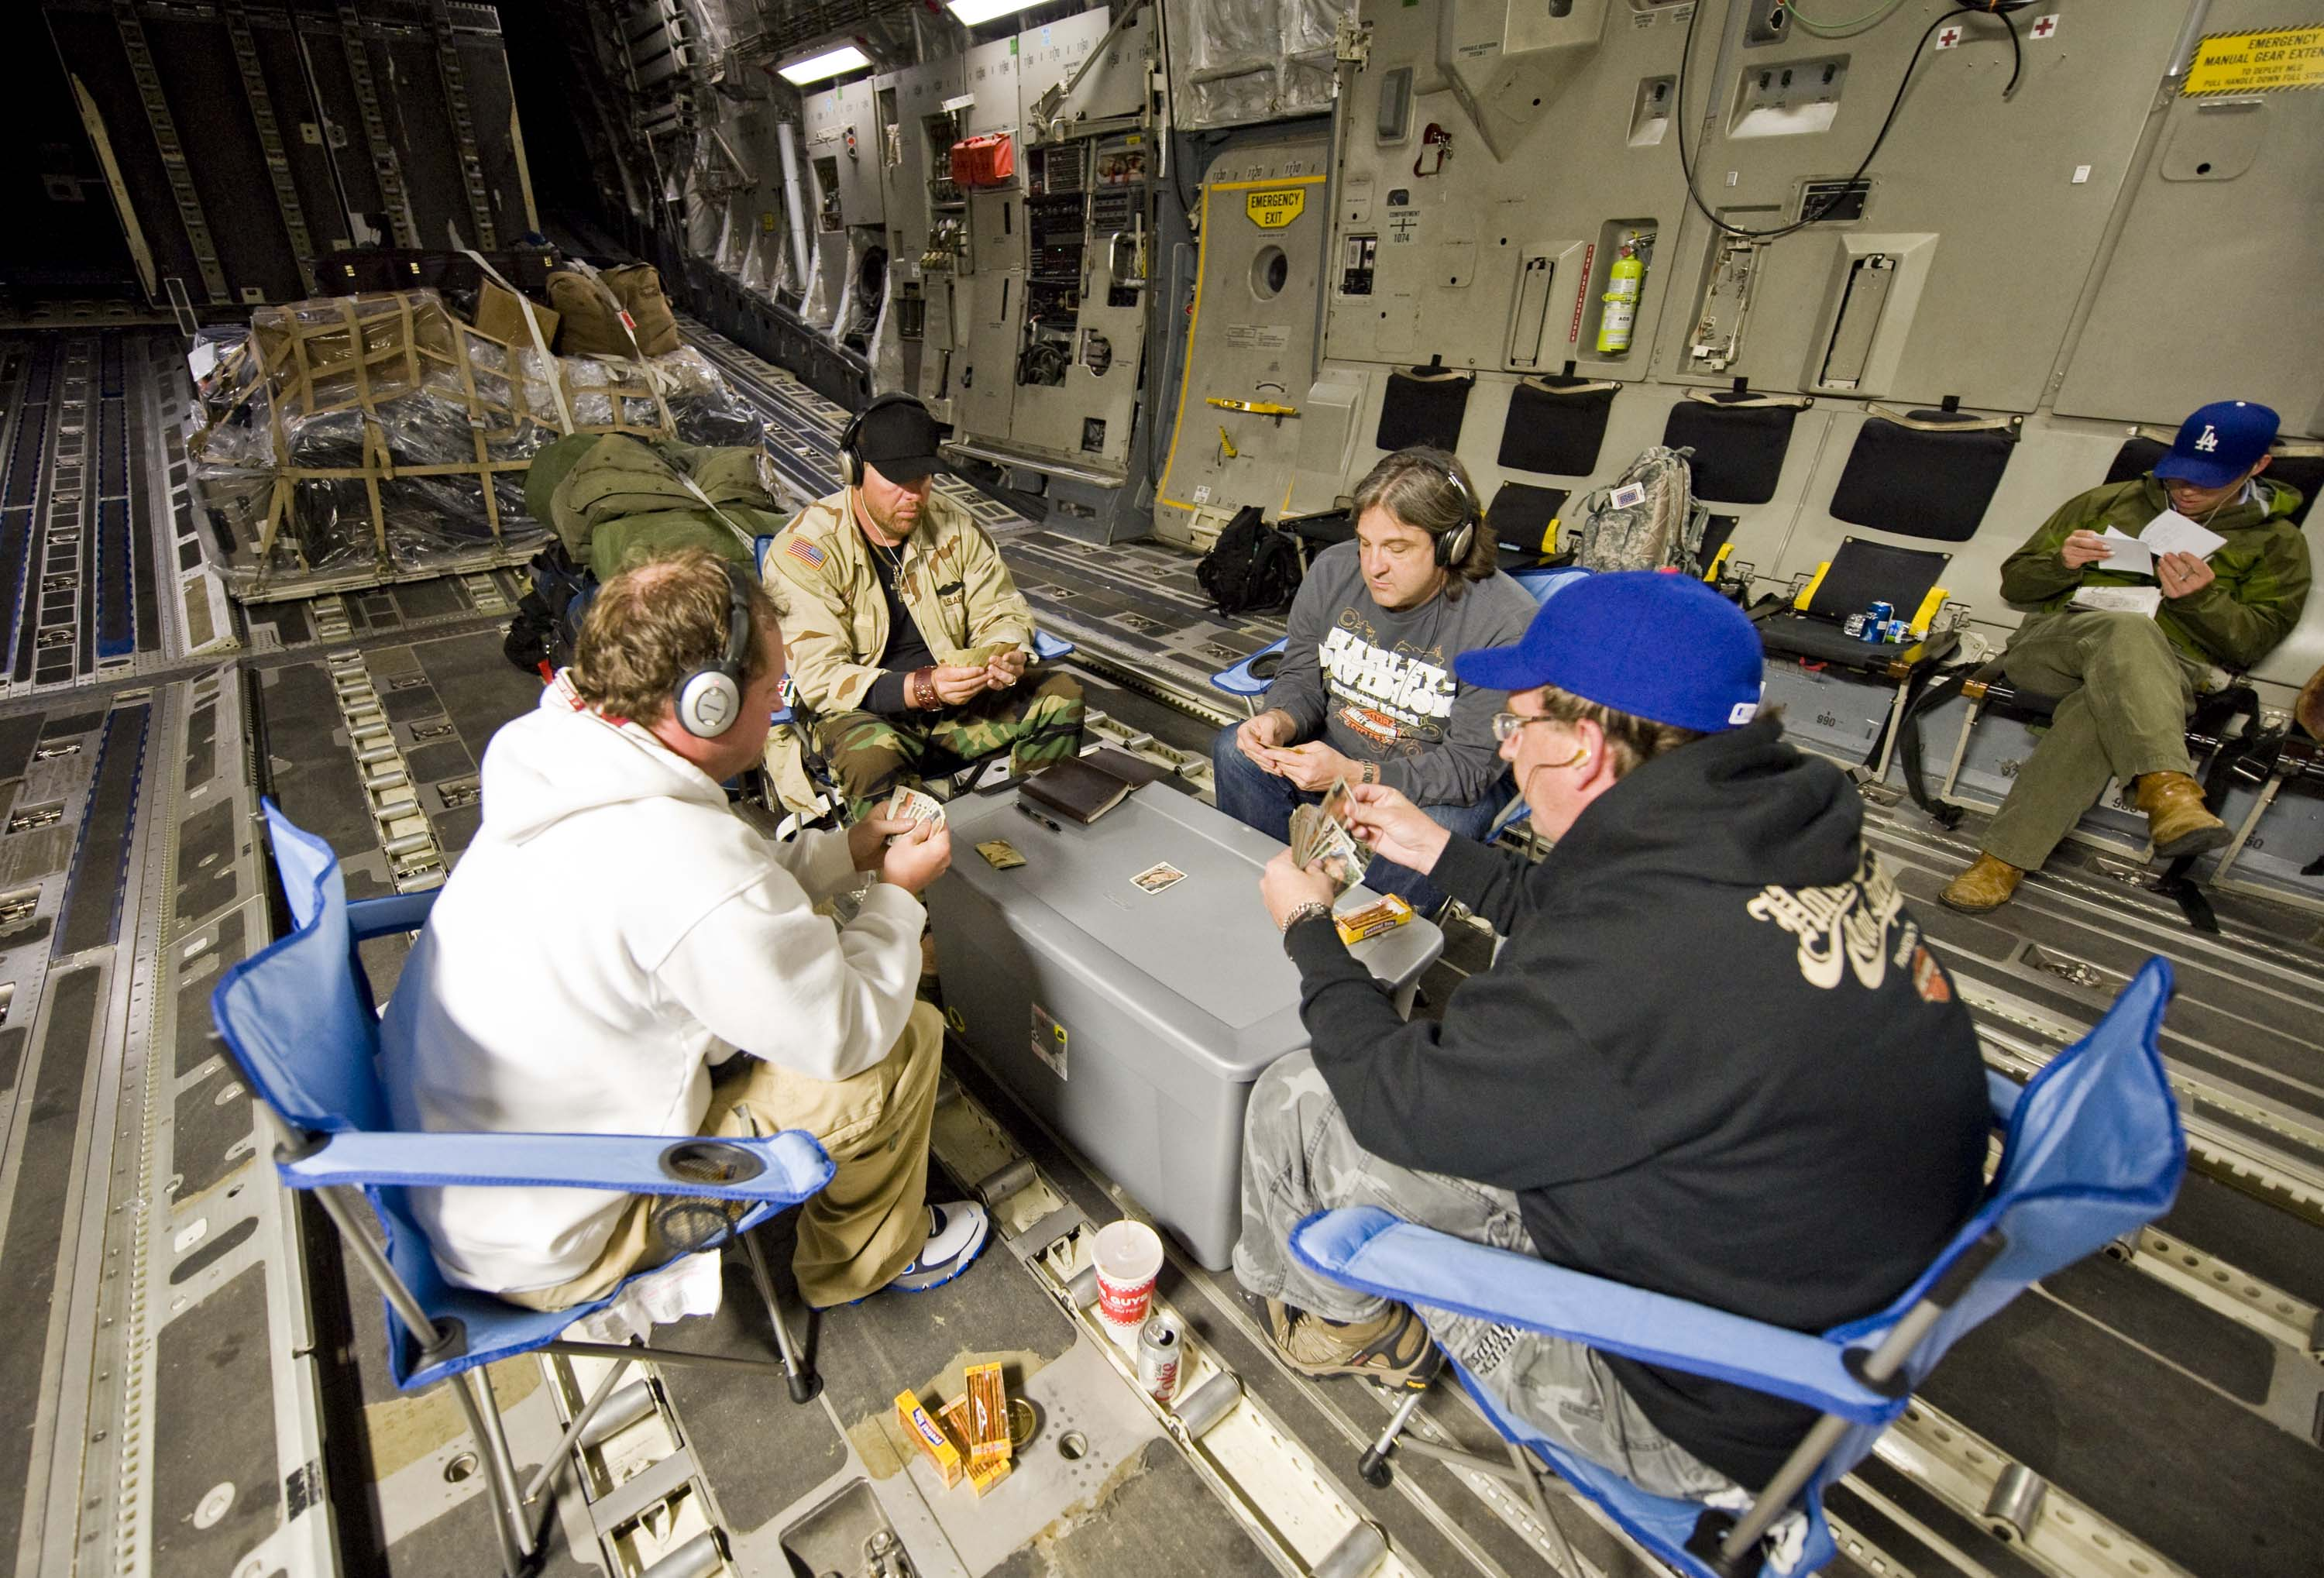 Toby Keith in Afghanistan in 2009 putting on shows at Forward Operating Bases, most of which haven't had any outside entertainment in six months. The core group with Toby Keith (C-black hat) play their traditional game of Spades off folding chairs and a storage box, at the rear of the C-17 on the flight to Germany for refueling and maintenance. (L-R) Brian O'Connell, Toby, Curt Motley, and Mitch DeNeui (back to camera). (Dave Gatley/USO)